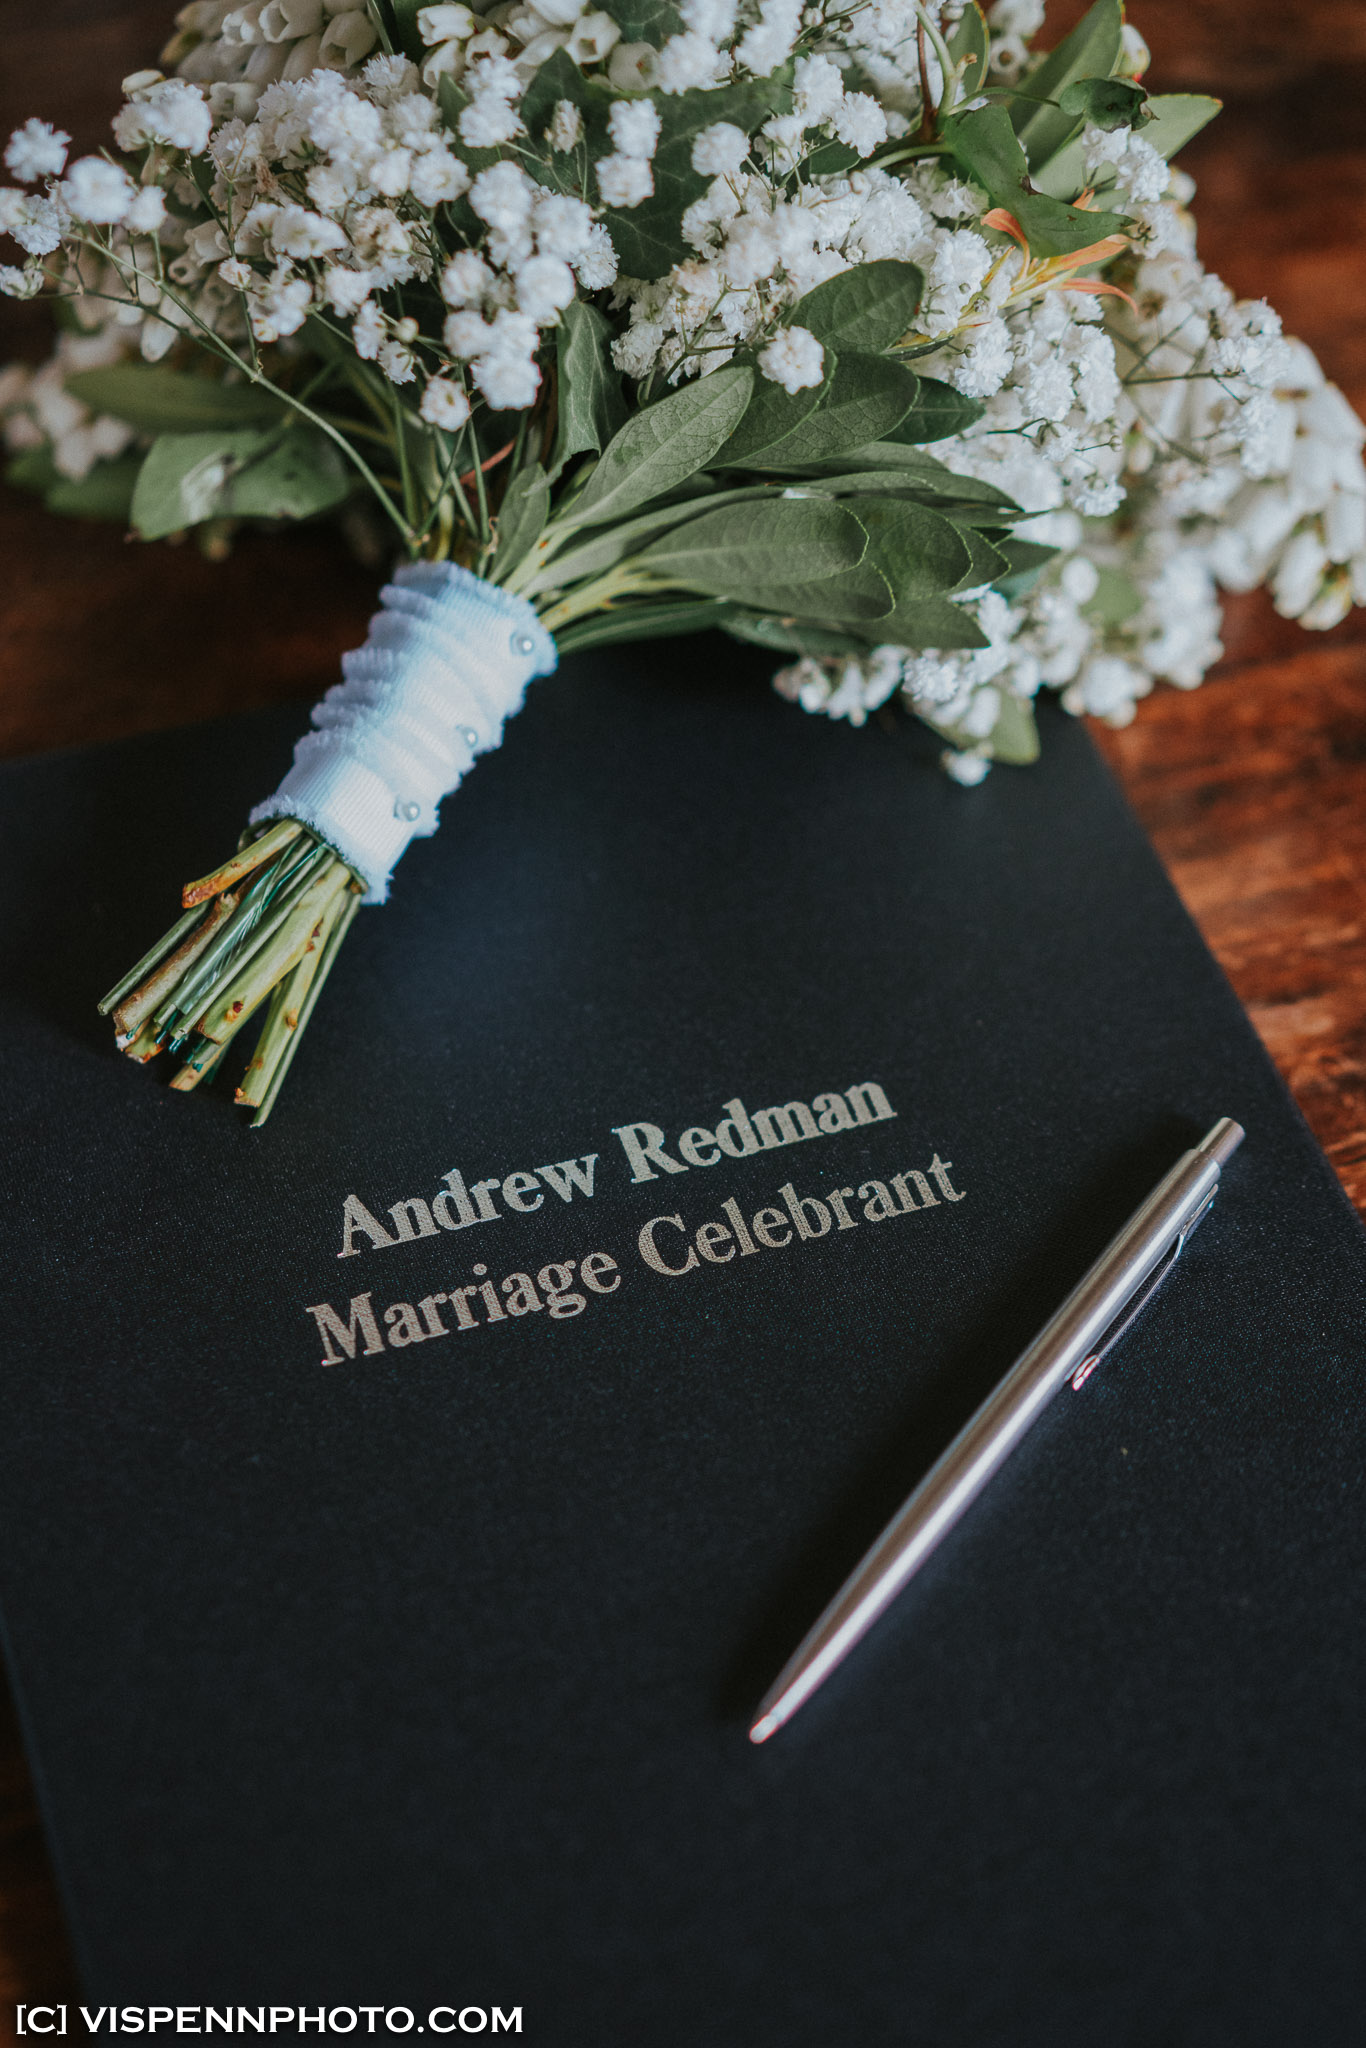 WEDDING DAY Photography Melbourne LeanneWesley 03909 4H A7R3 ZHPENN